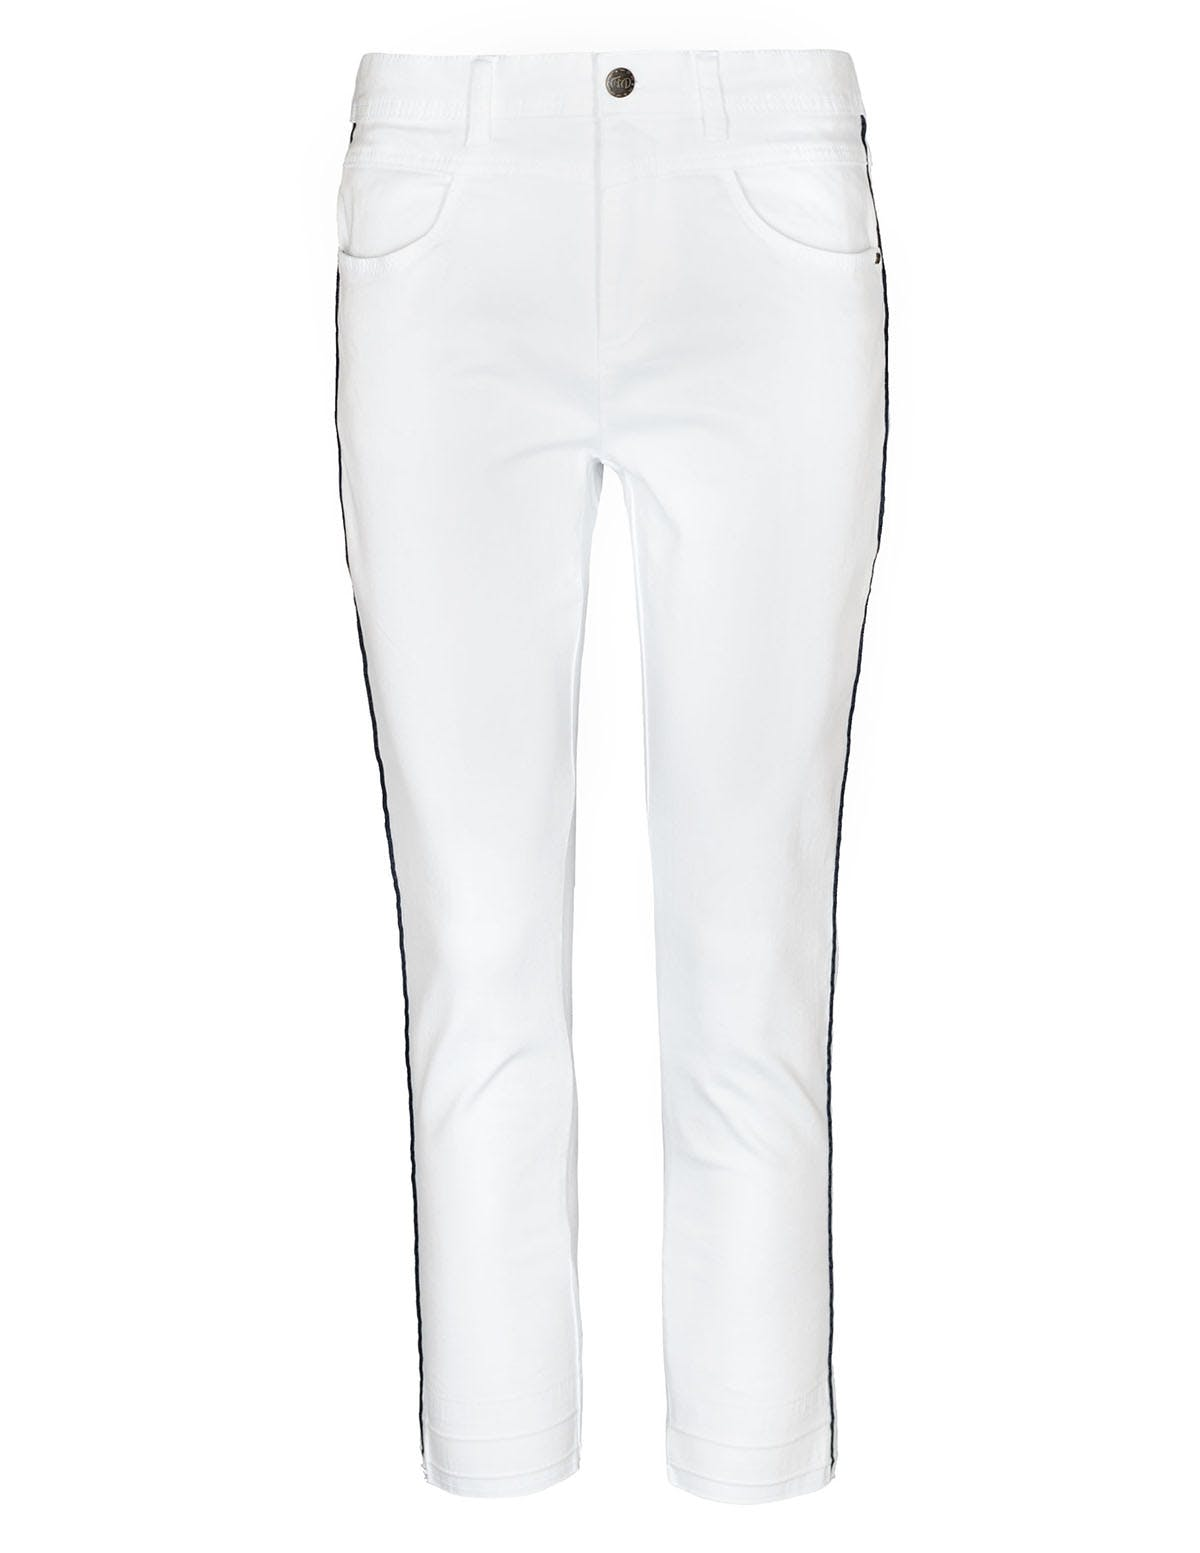 FRY DAY Jeans-Hose - White